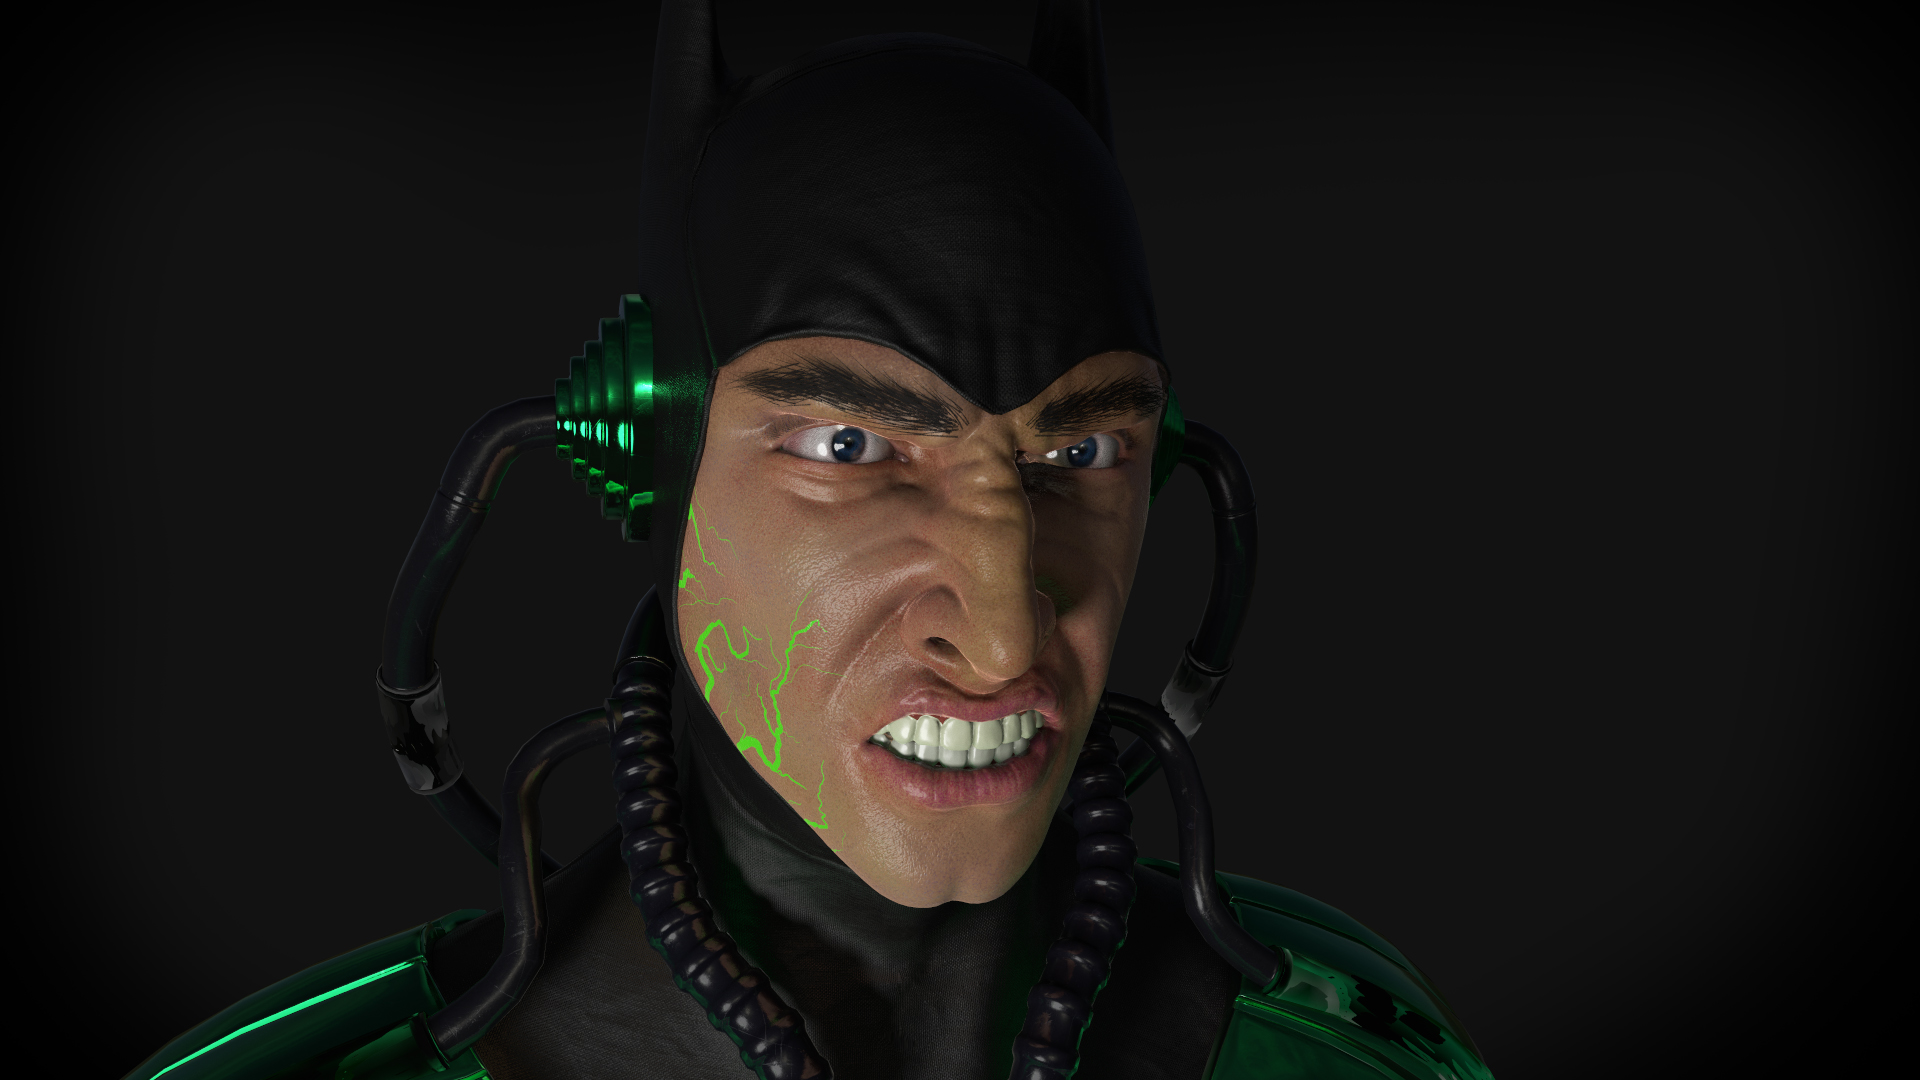 Batman the Dawnbreaker